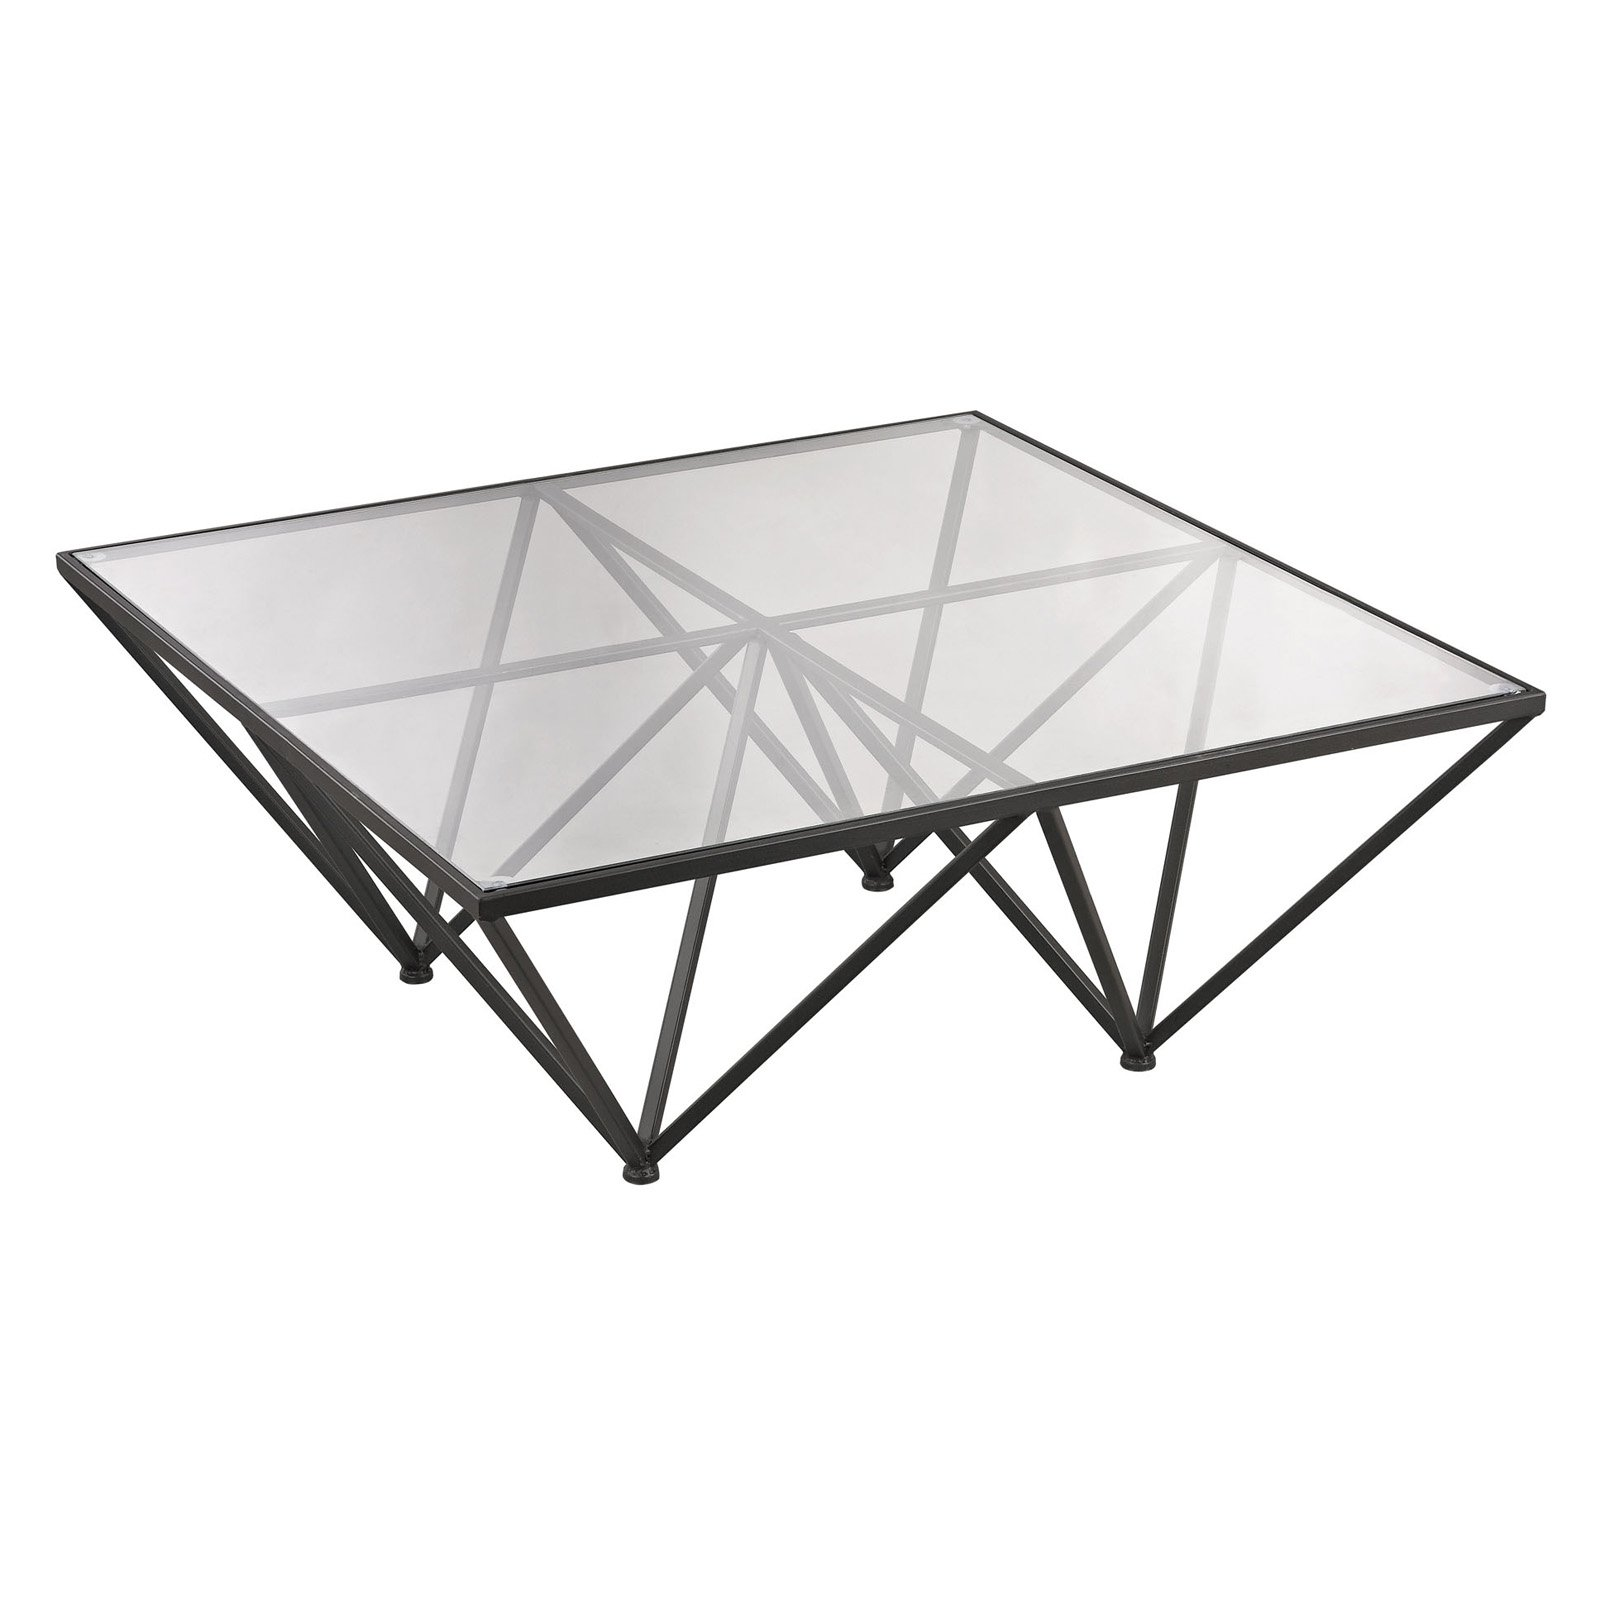 Dimond Home Geometric Coffee Table by Dimond Home